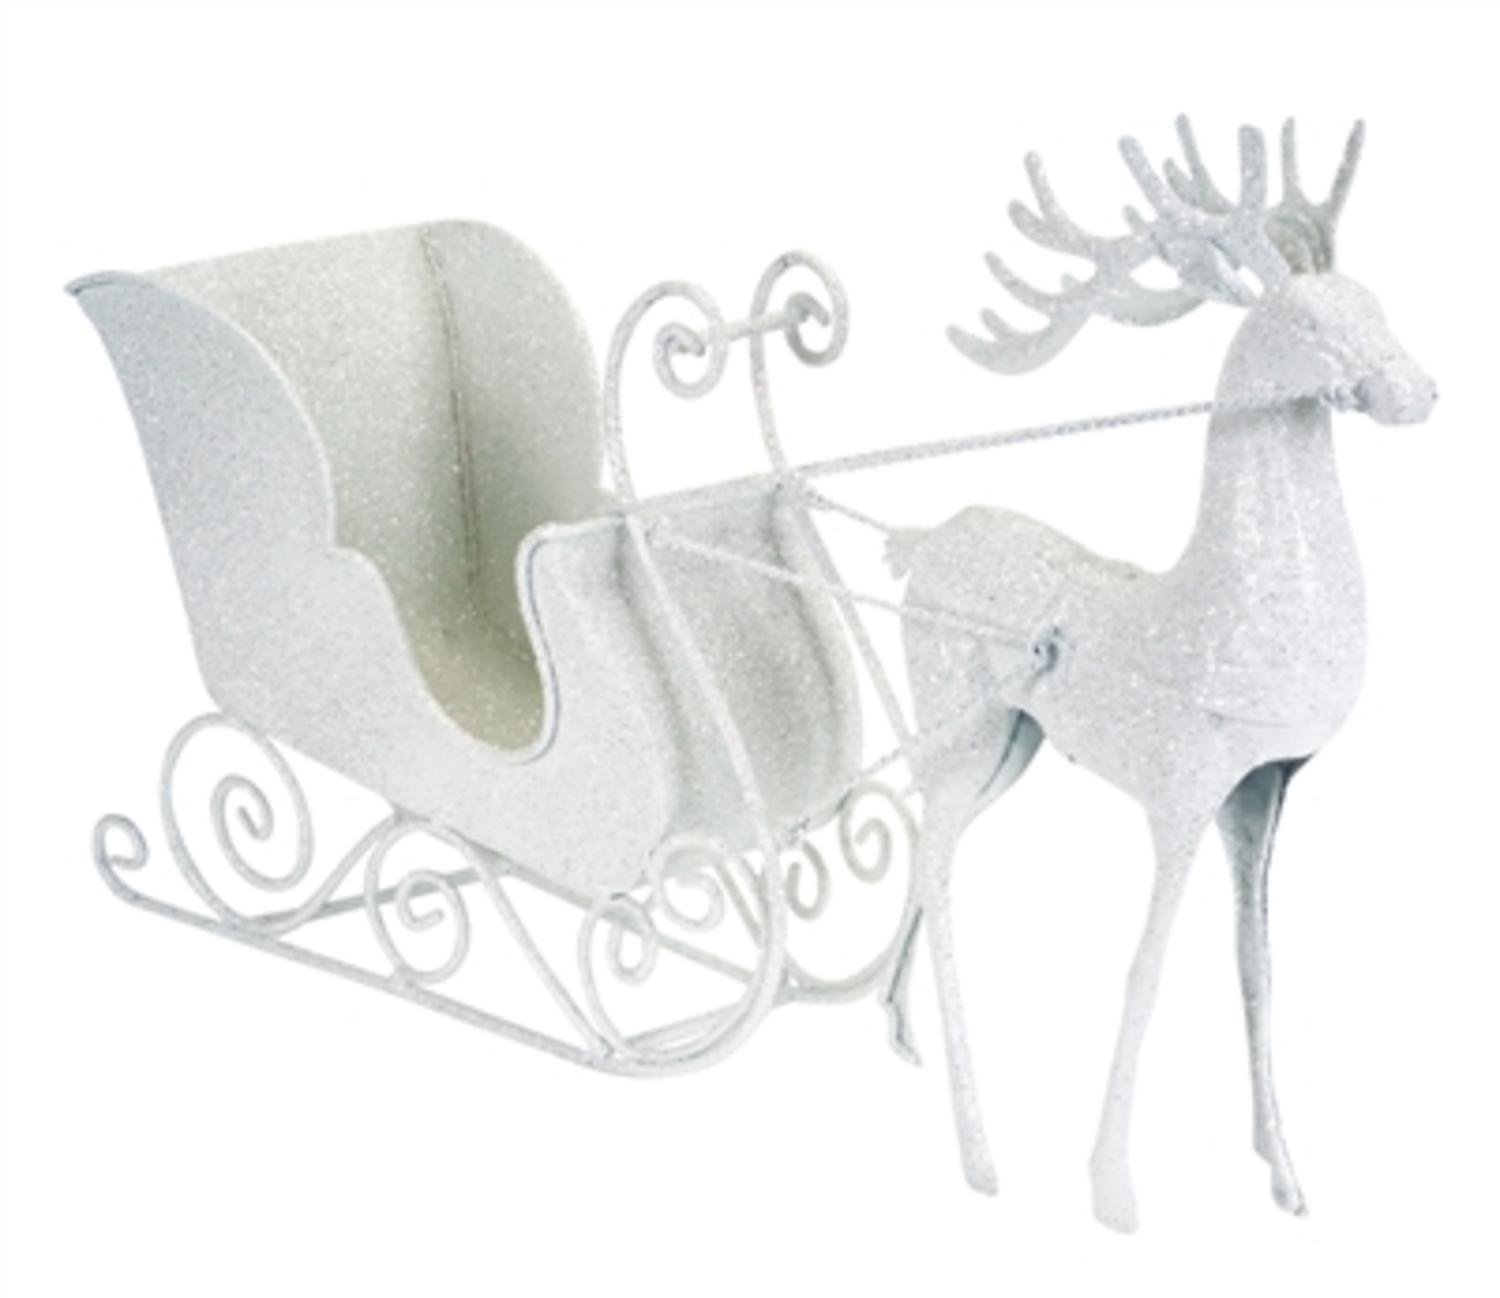 Christmas Glitter White Reindeer and Sleigh Table Decor  Set of 2